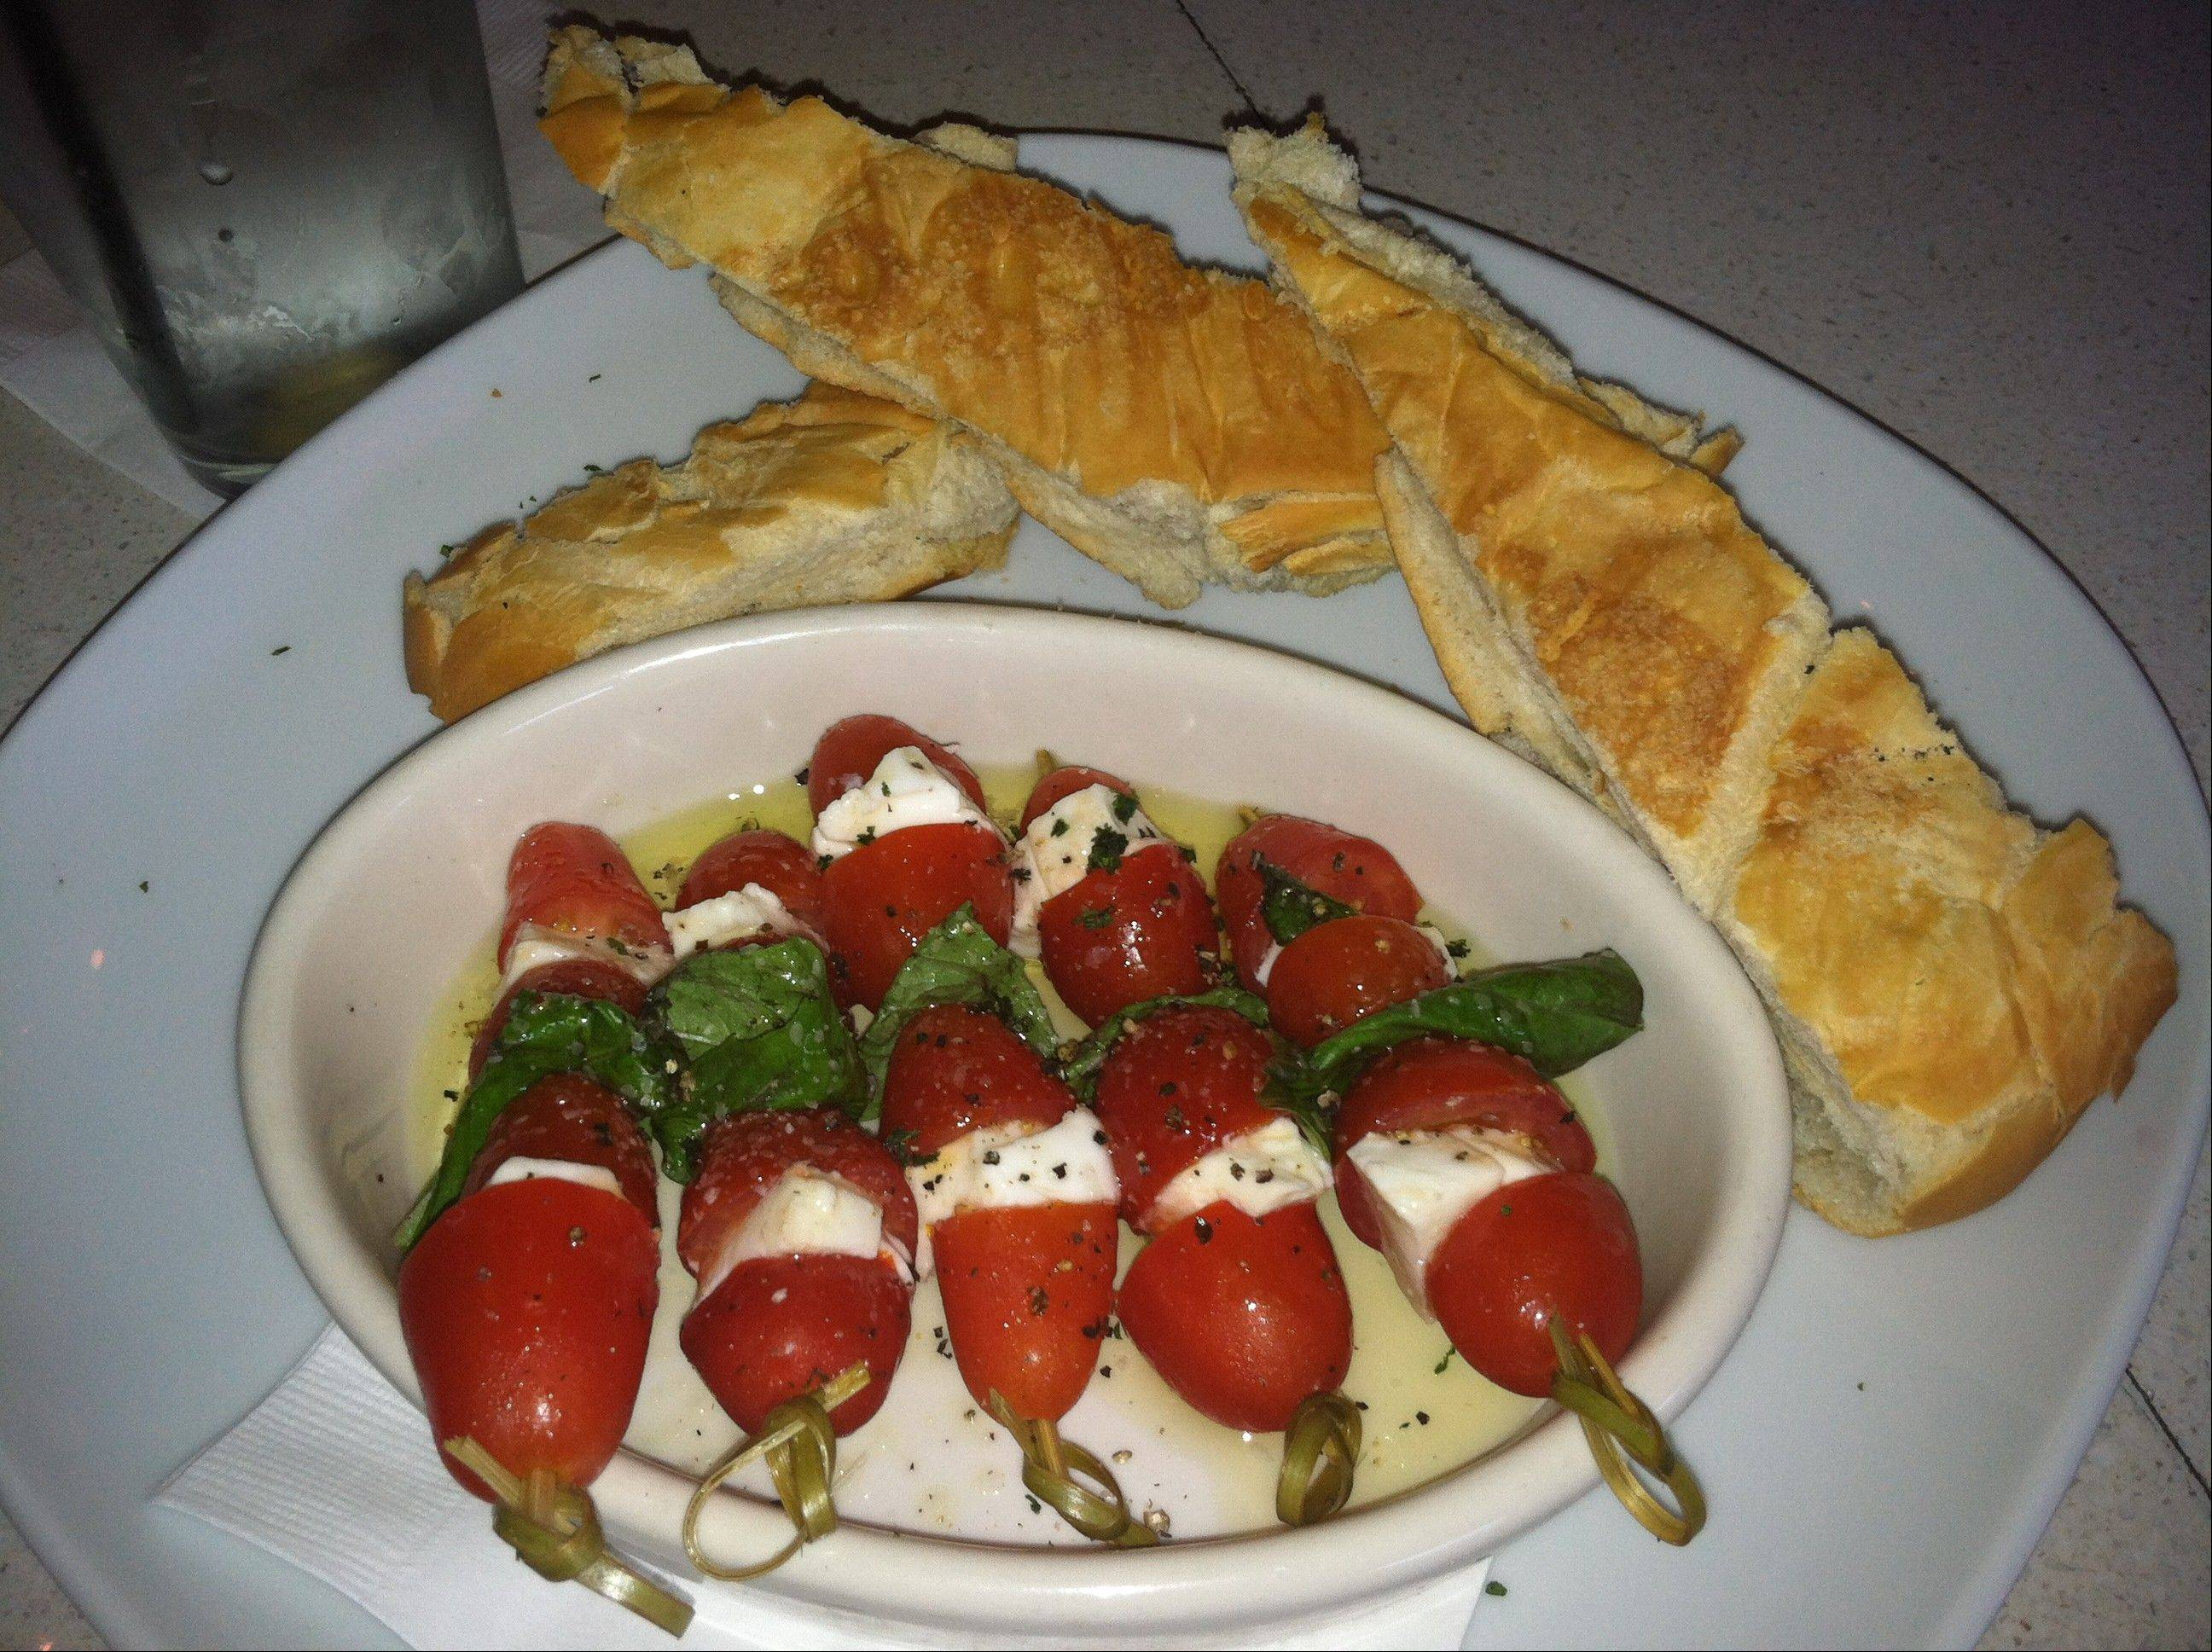 Caprese skewers with tomatoes, mozzarella and basil on skewers are served up at Queenshead, a restaurant in the emerging, funky Grand Central District of St. Petersburg, Fla.